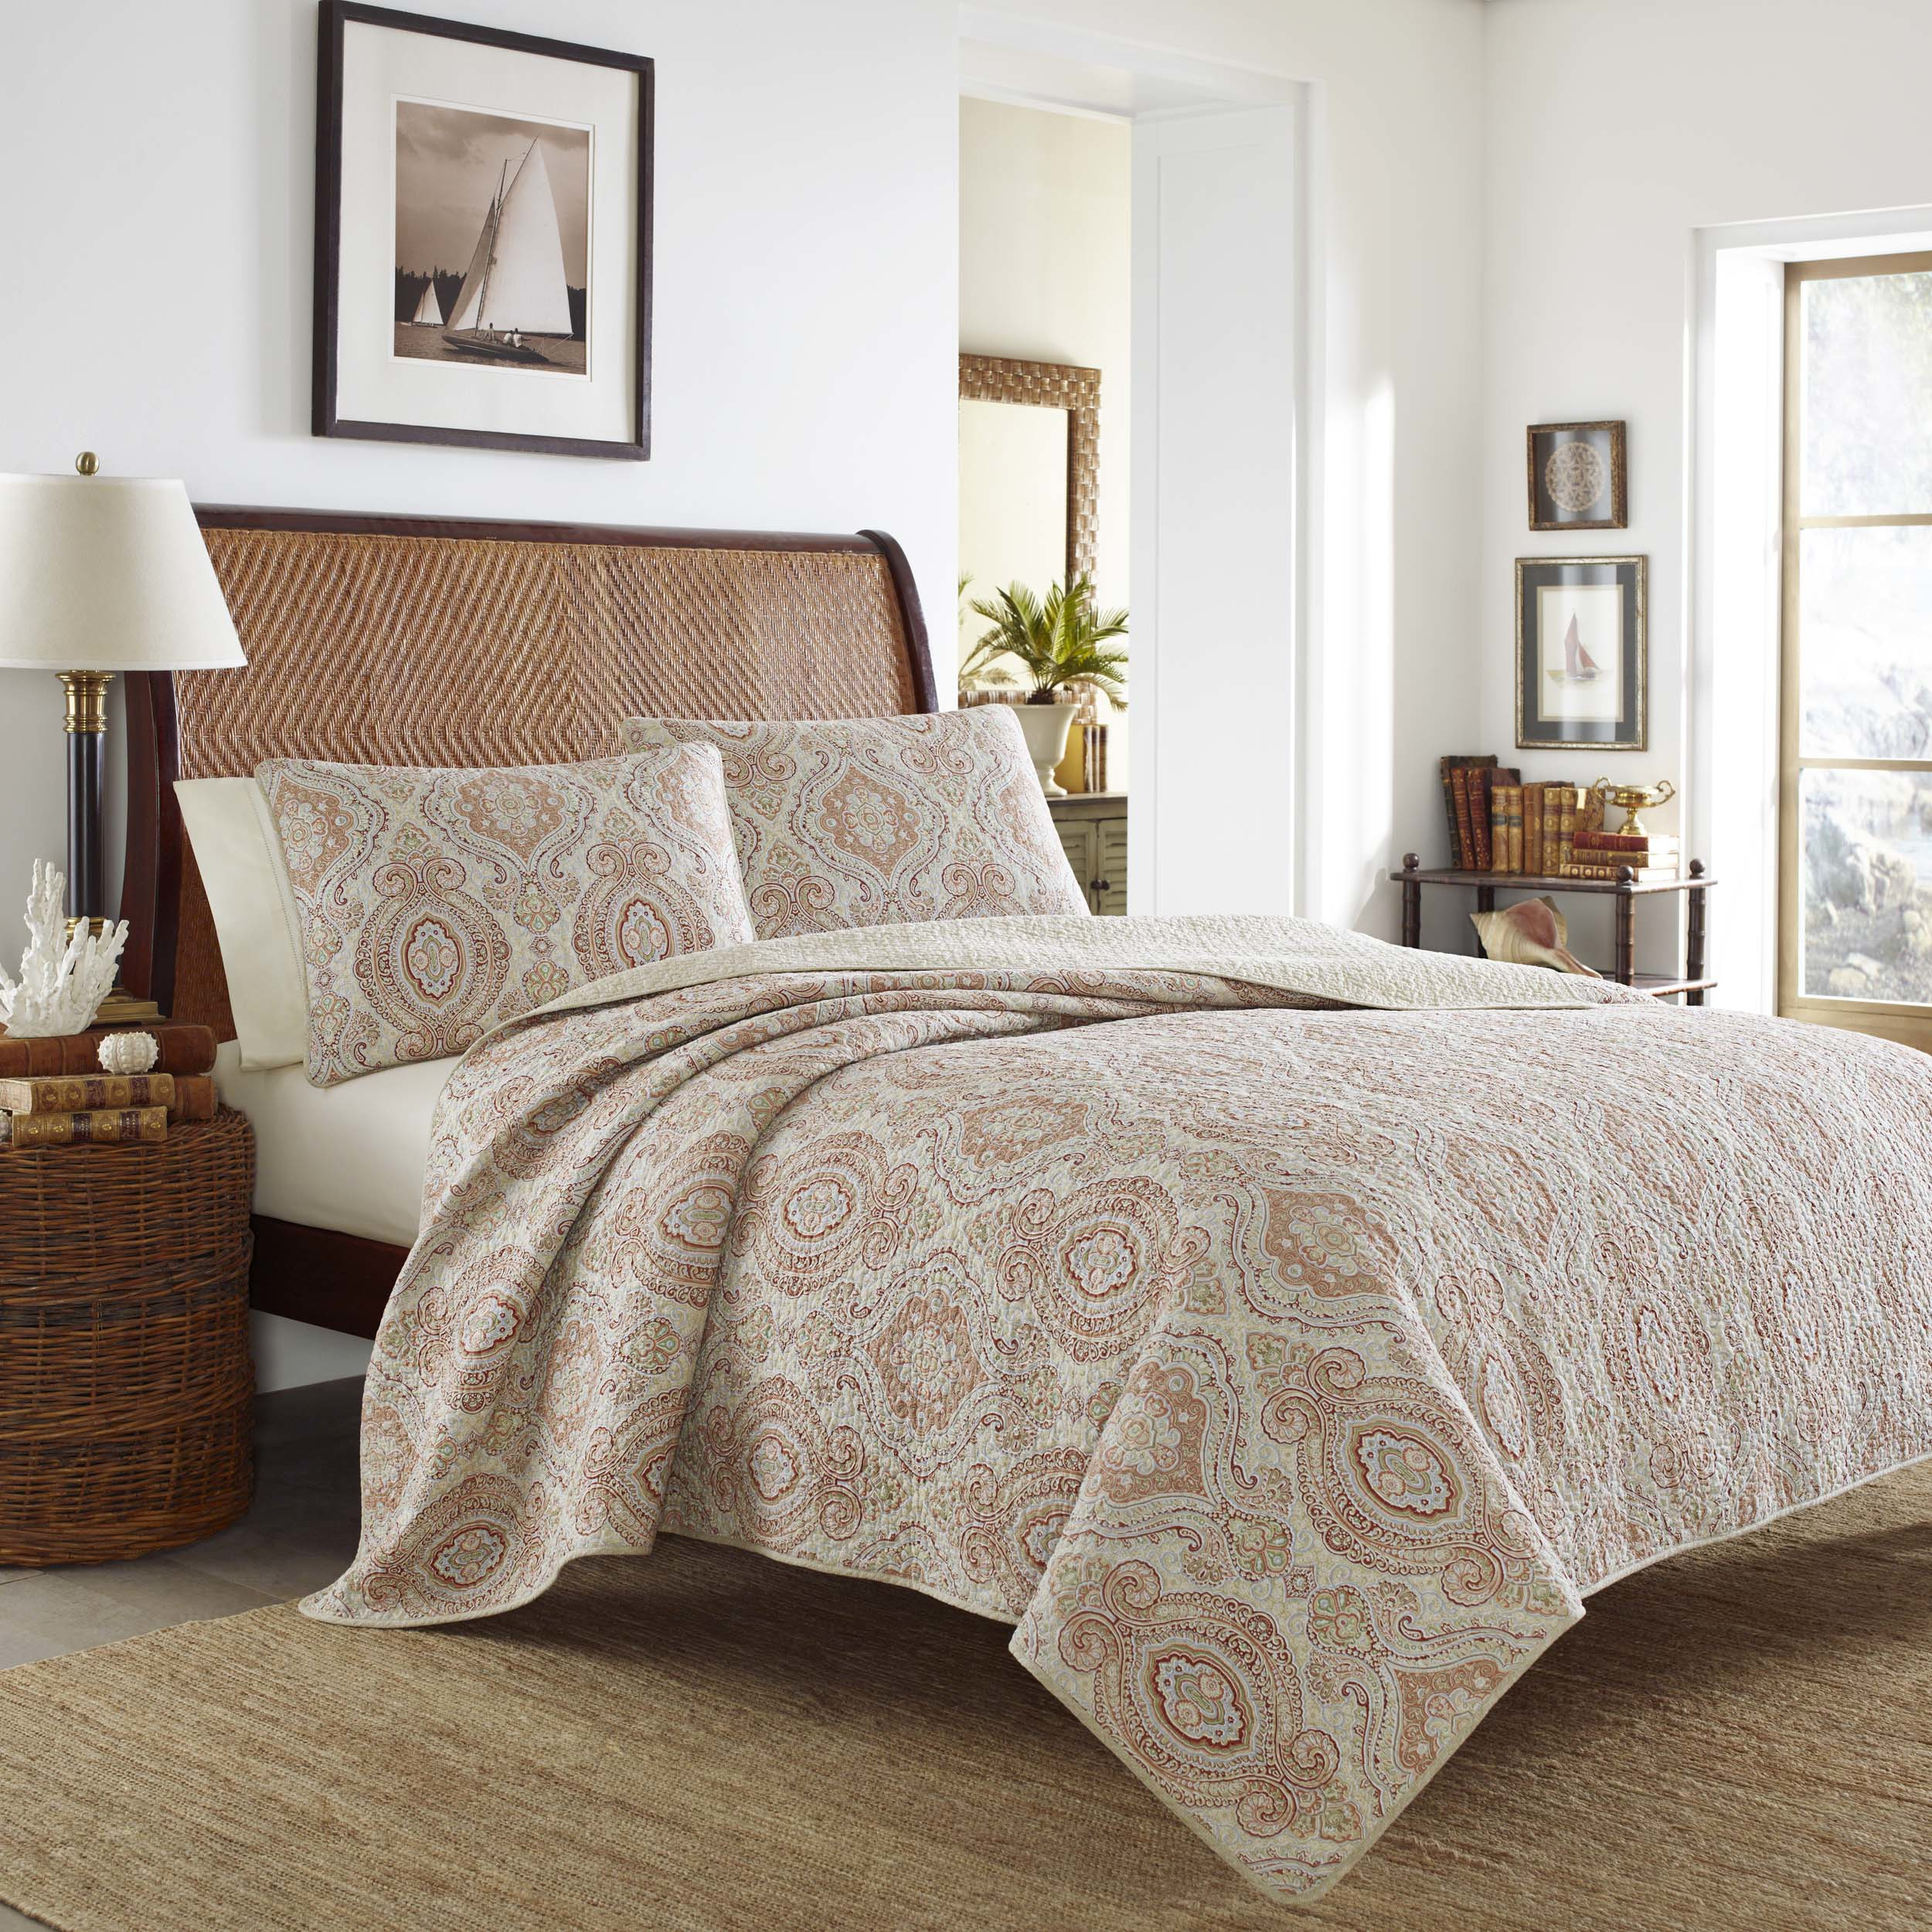 Mesmerizing king size quilts for modern bedroom design with king size quilt dimensions